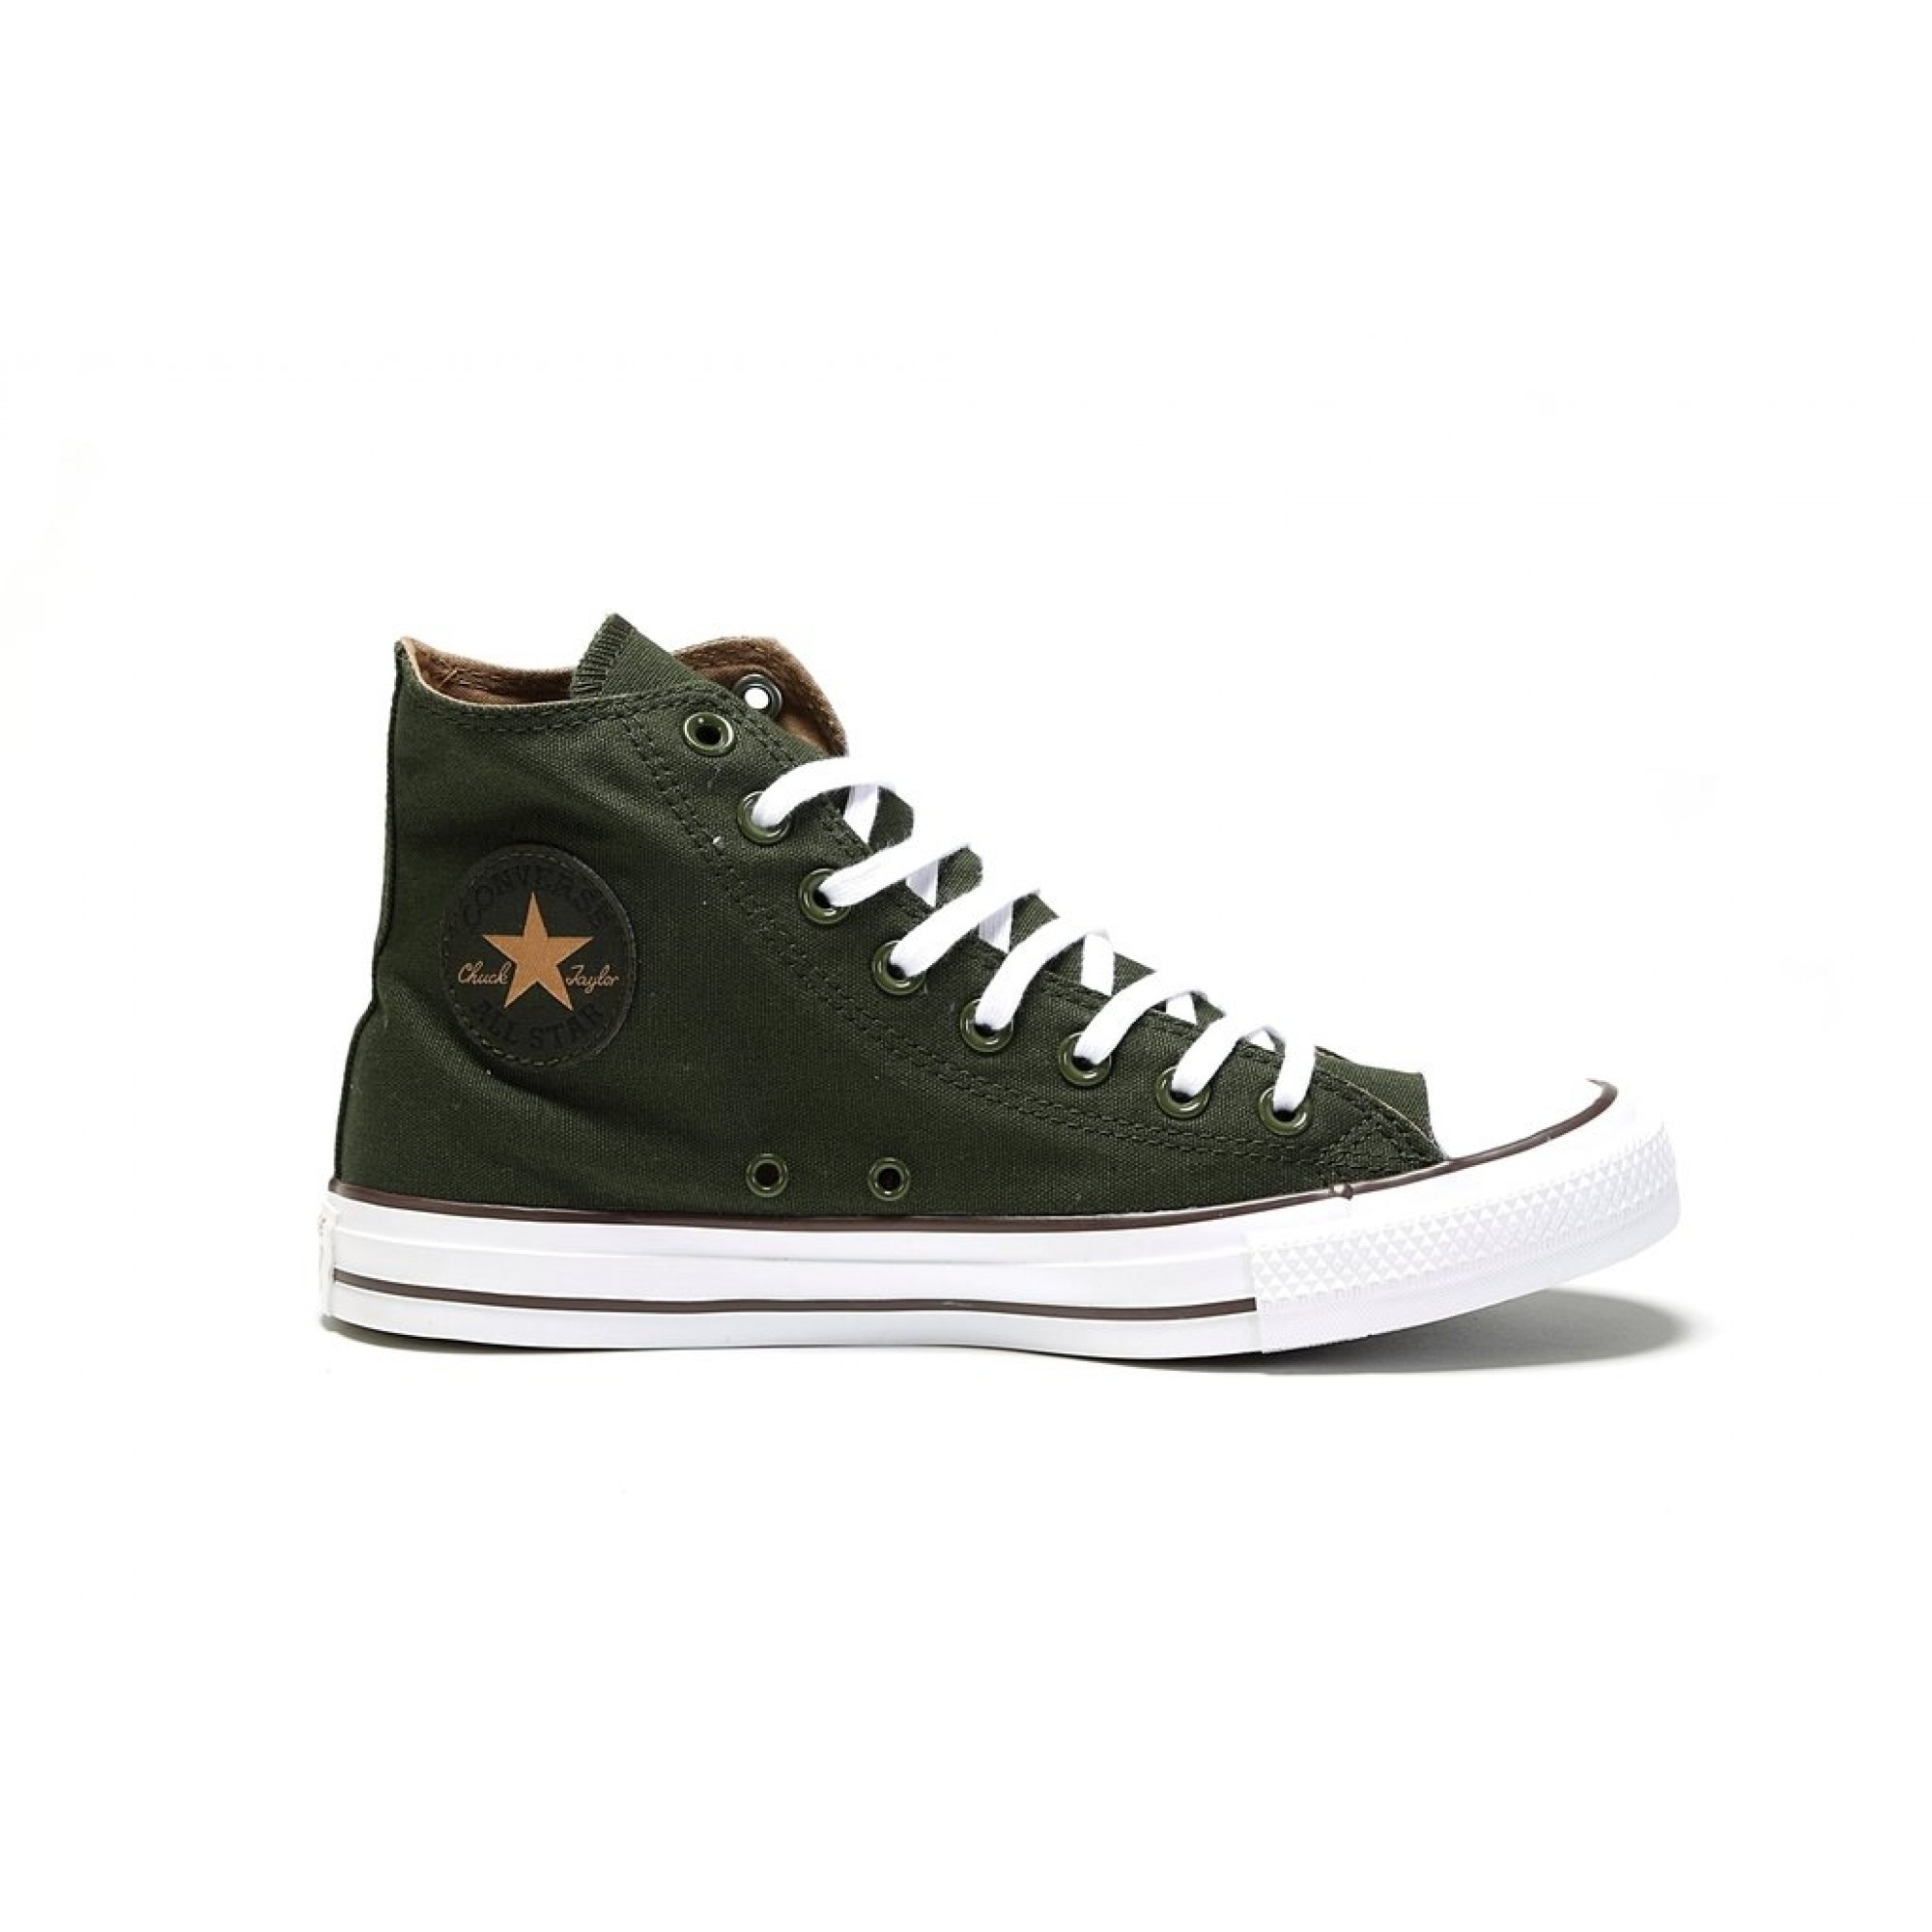 4c74b8924d0 Venue Store CONVERSE Chuck Taylor All Star Hi Shoe - Utility Green Teak  White Free Delivery Over  100